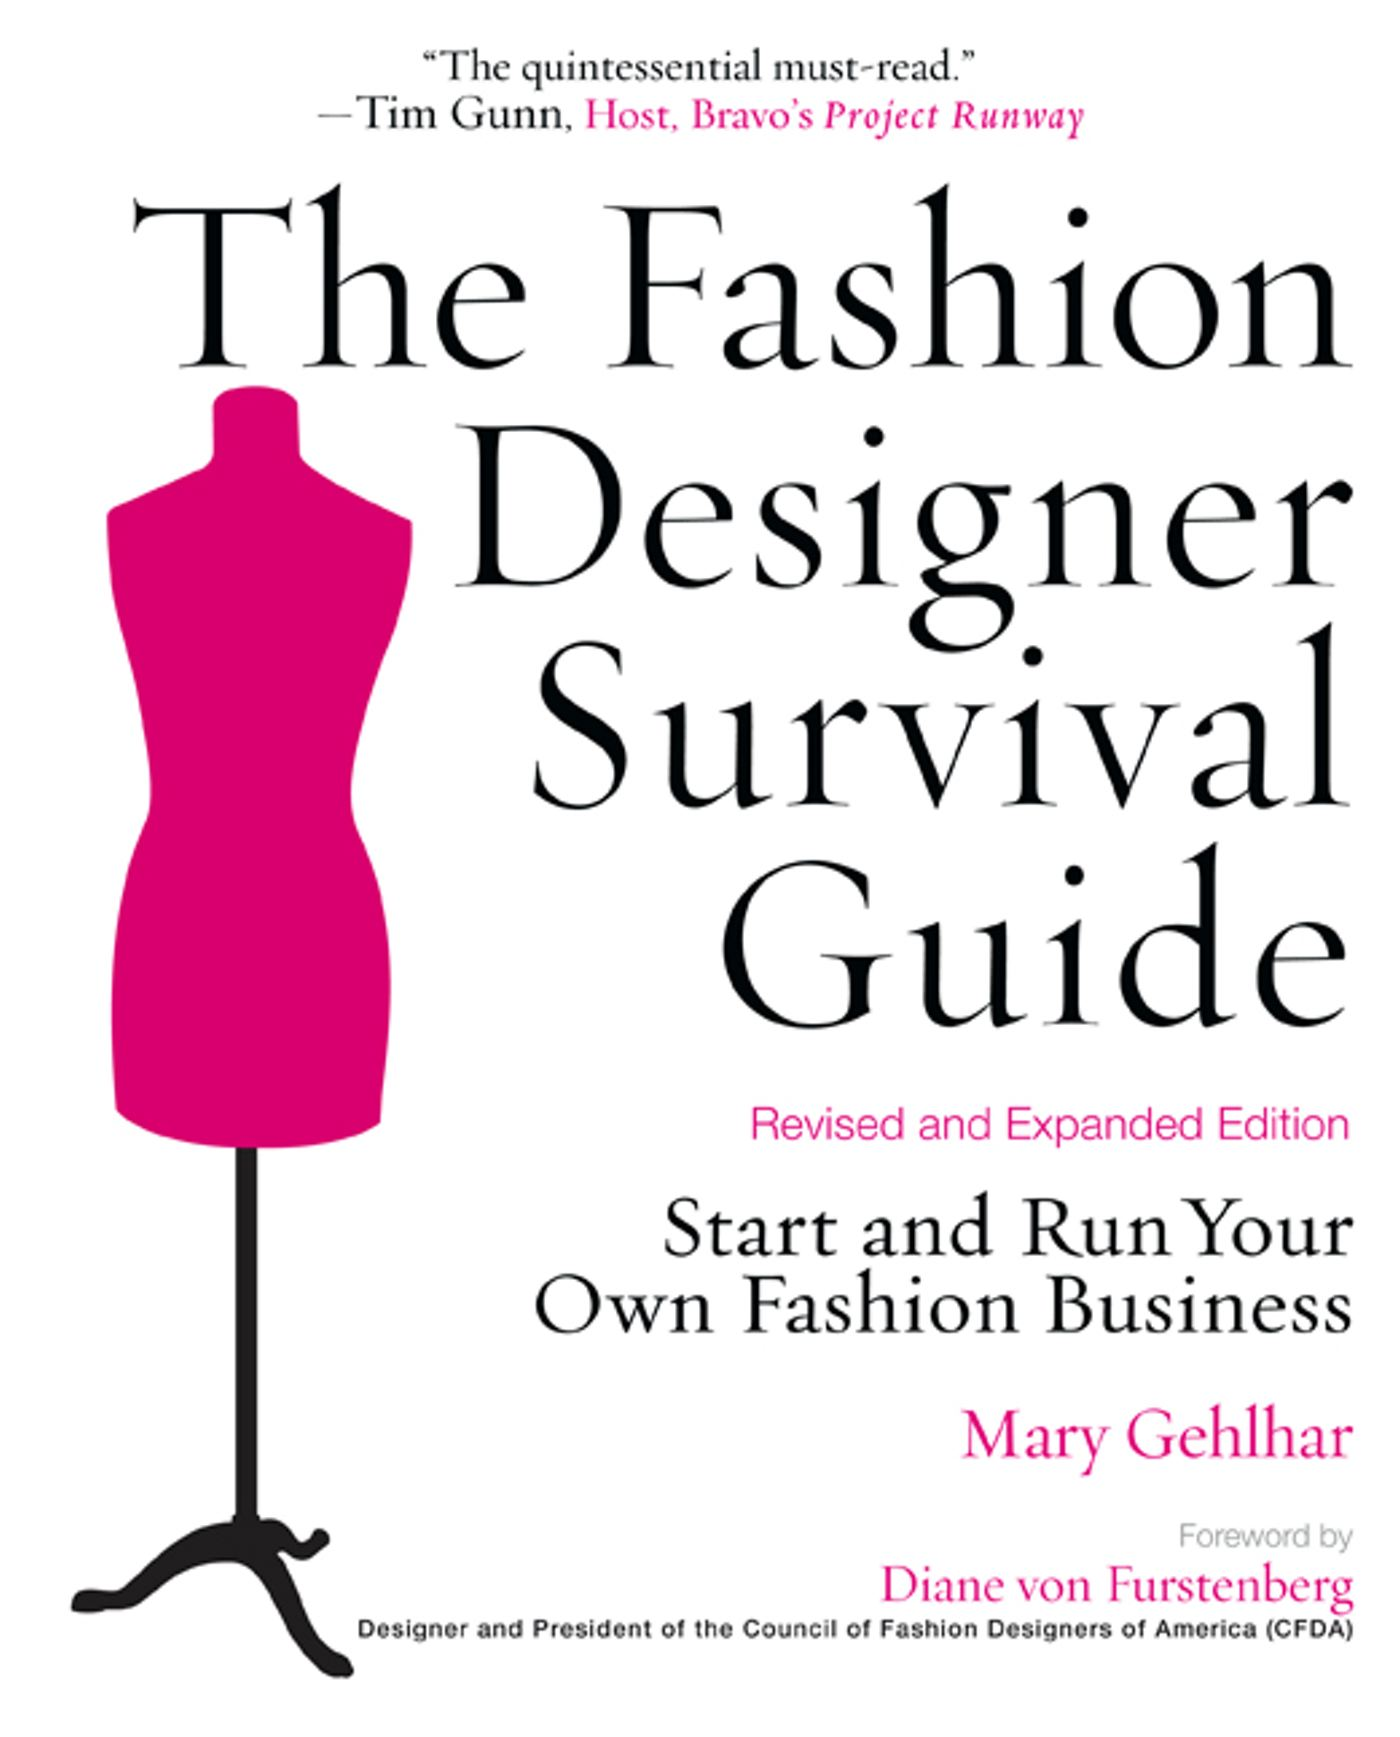 Book Cover Of Fashion ~ The fashion designer survival guide revised and expanded edition